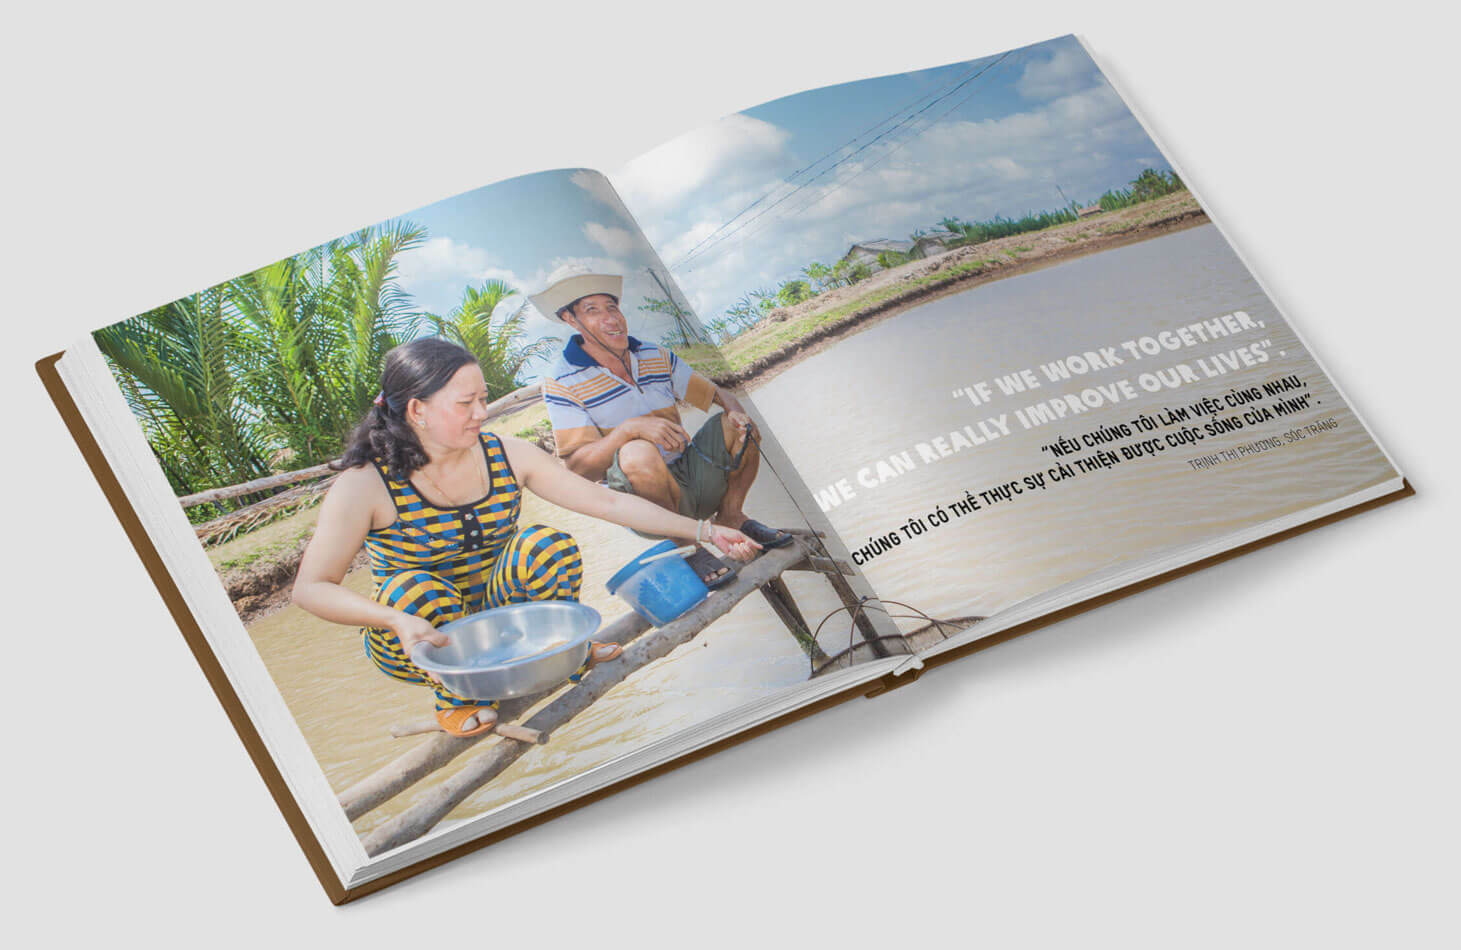 Oxfam, photo book, photography, South East Asia, Vietnam, visual storytelling, shrimp farming, teamwork